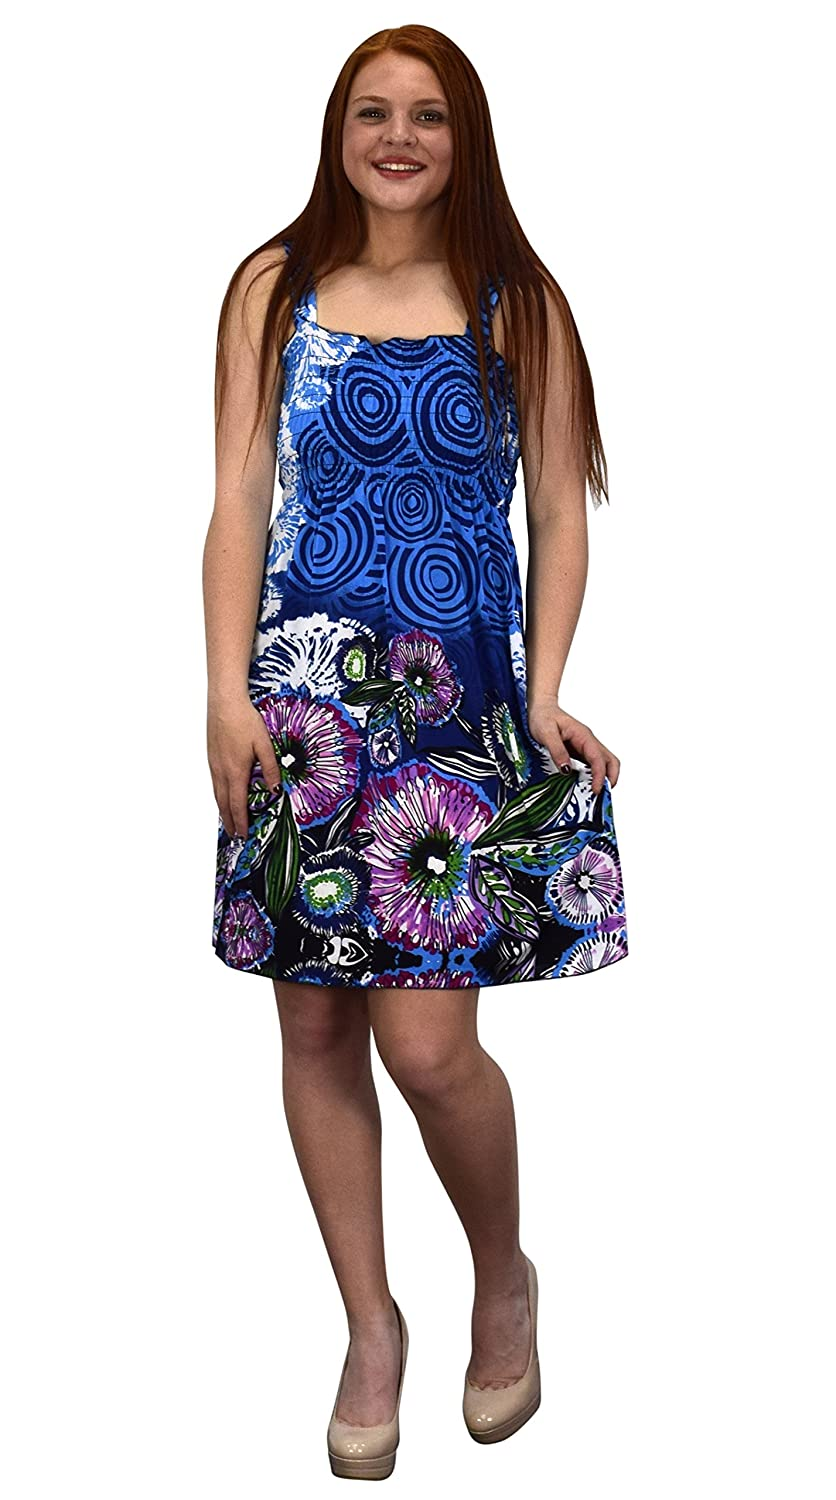 bcb0abb694 Peach Couture Juniors Knee Length Multicolor Exotic Smocked Printed Summer  Dress at Amazon Women s Clothing store